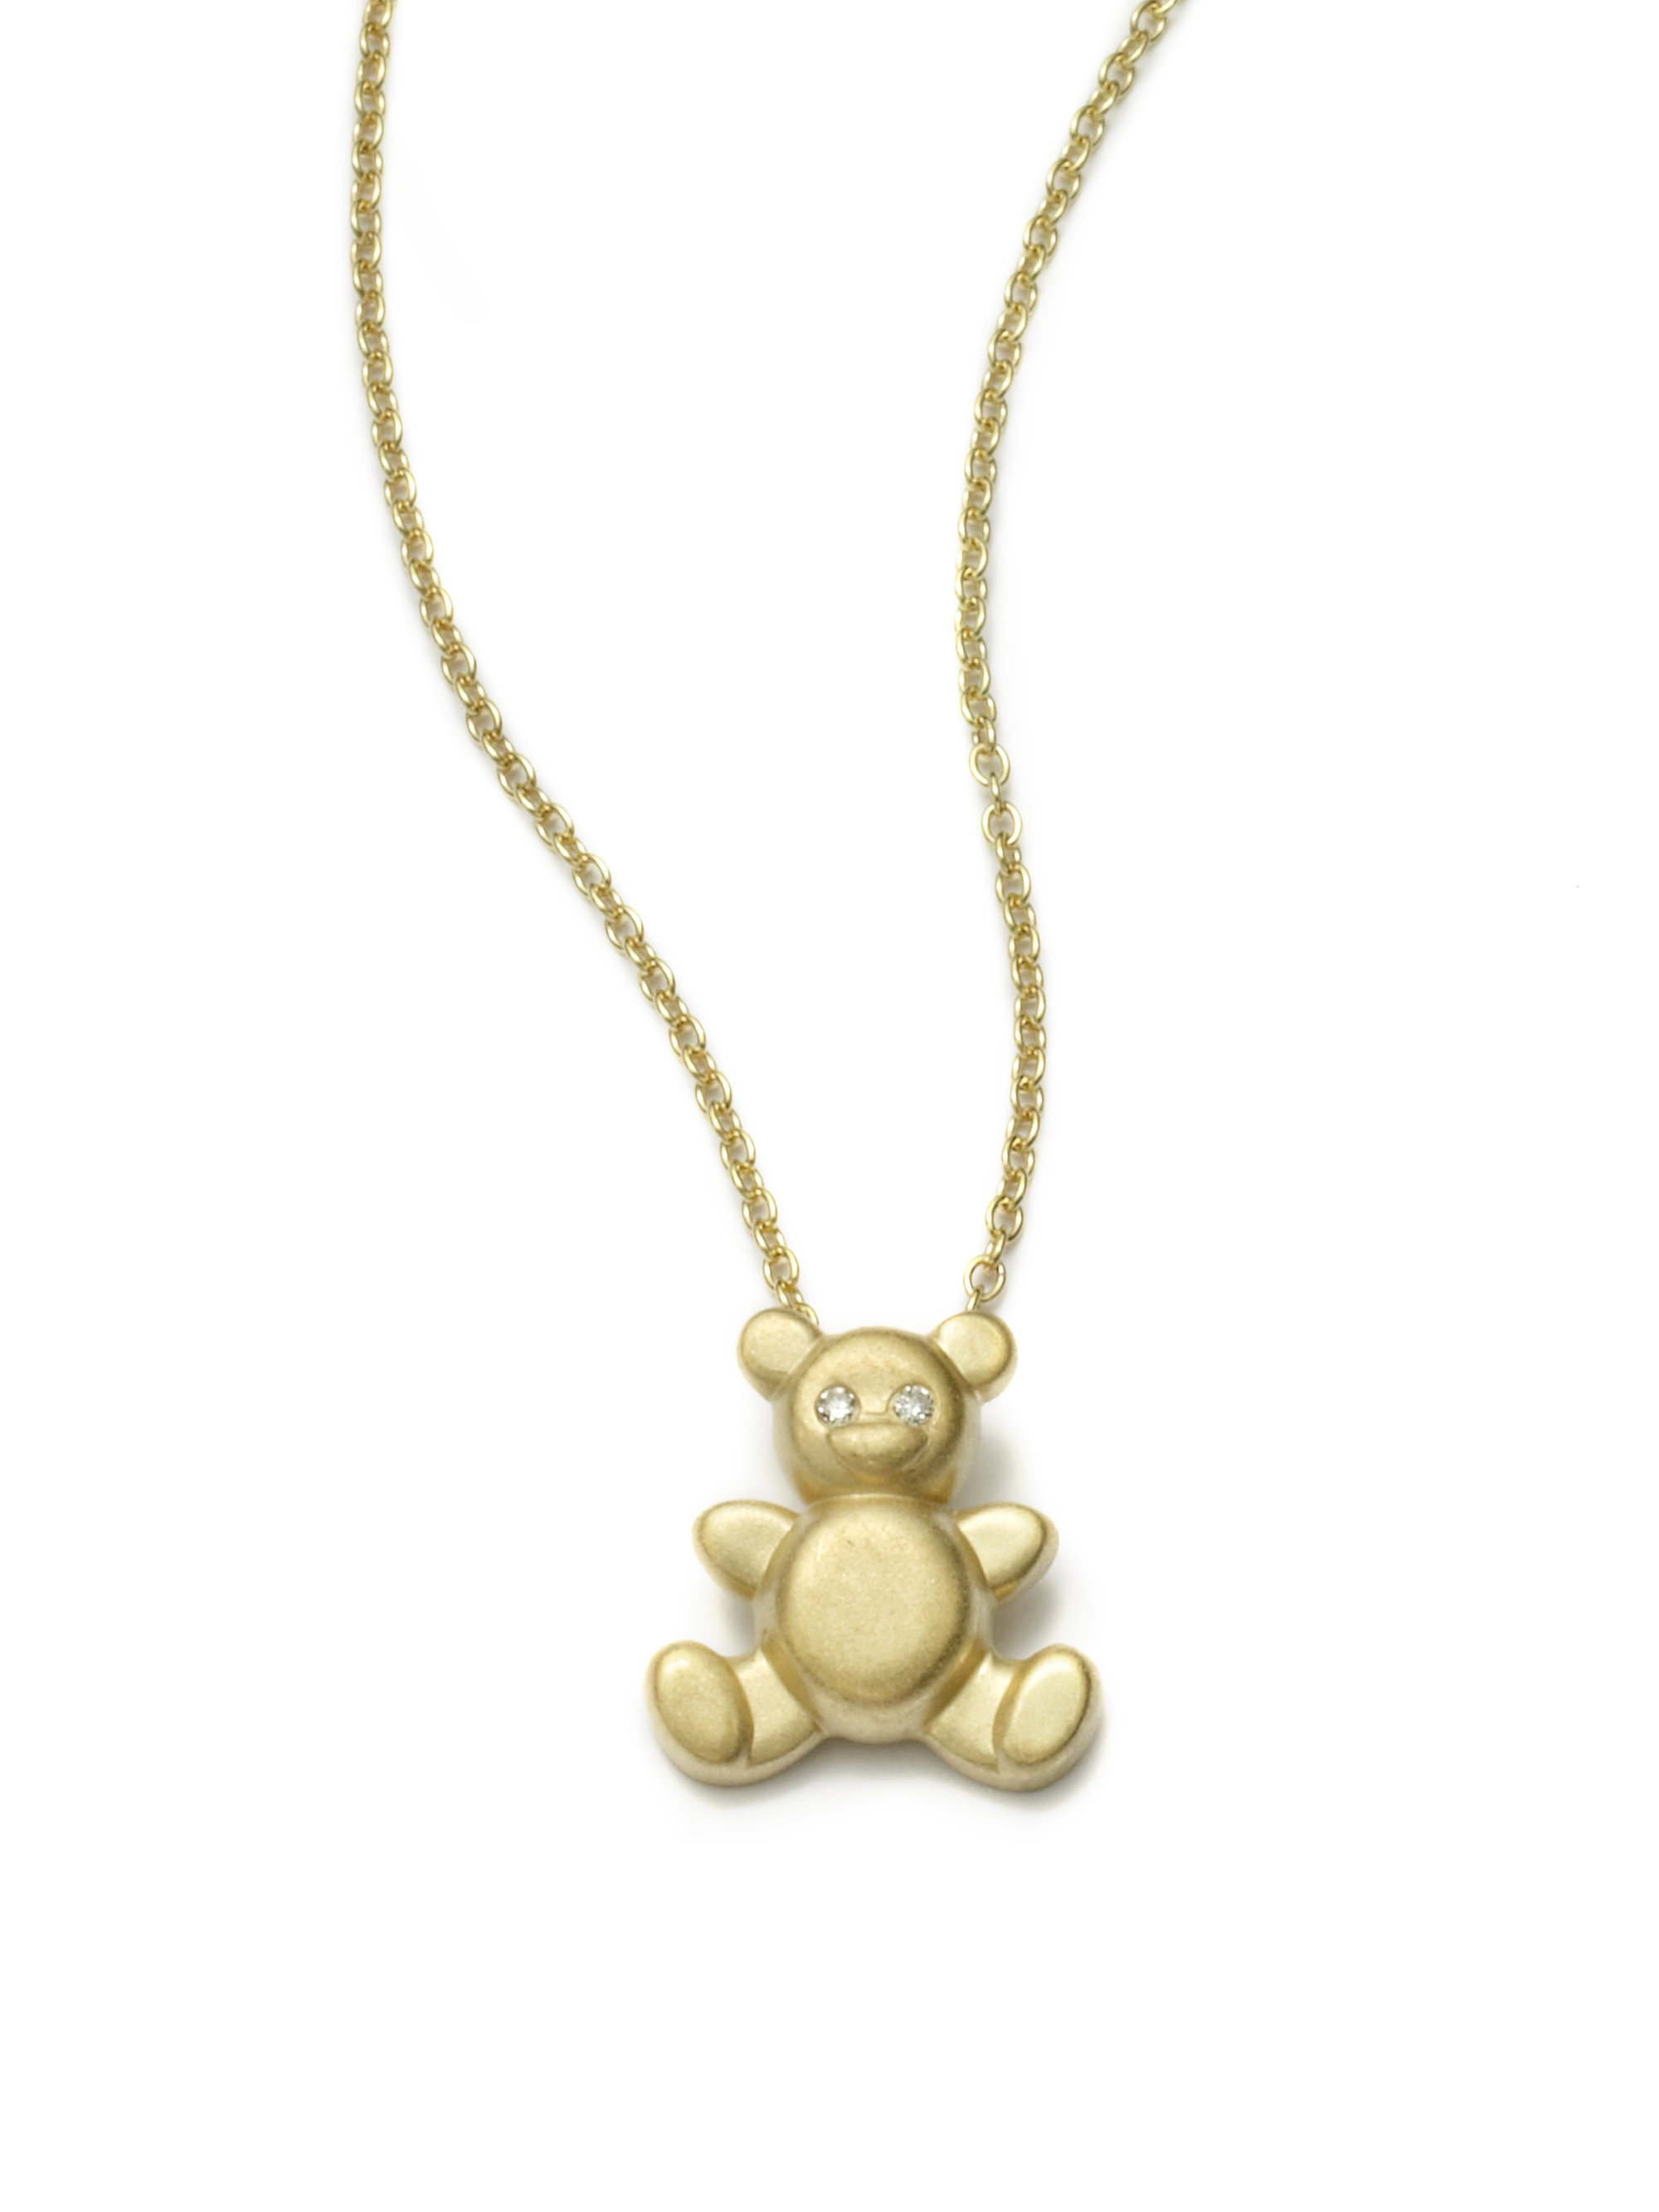 necklace products spinningdaisy bear teddy cuddle pendant crystal